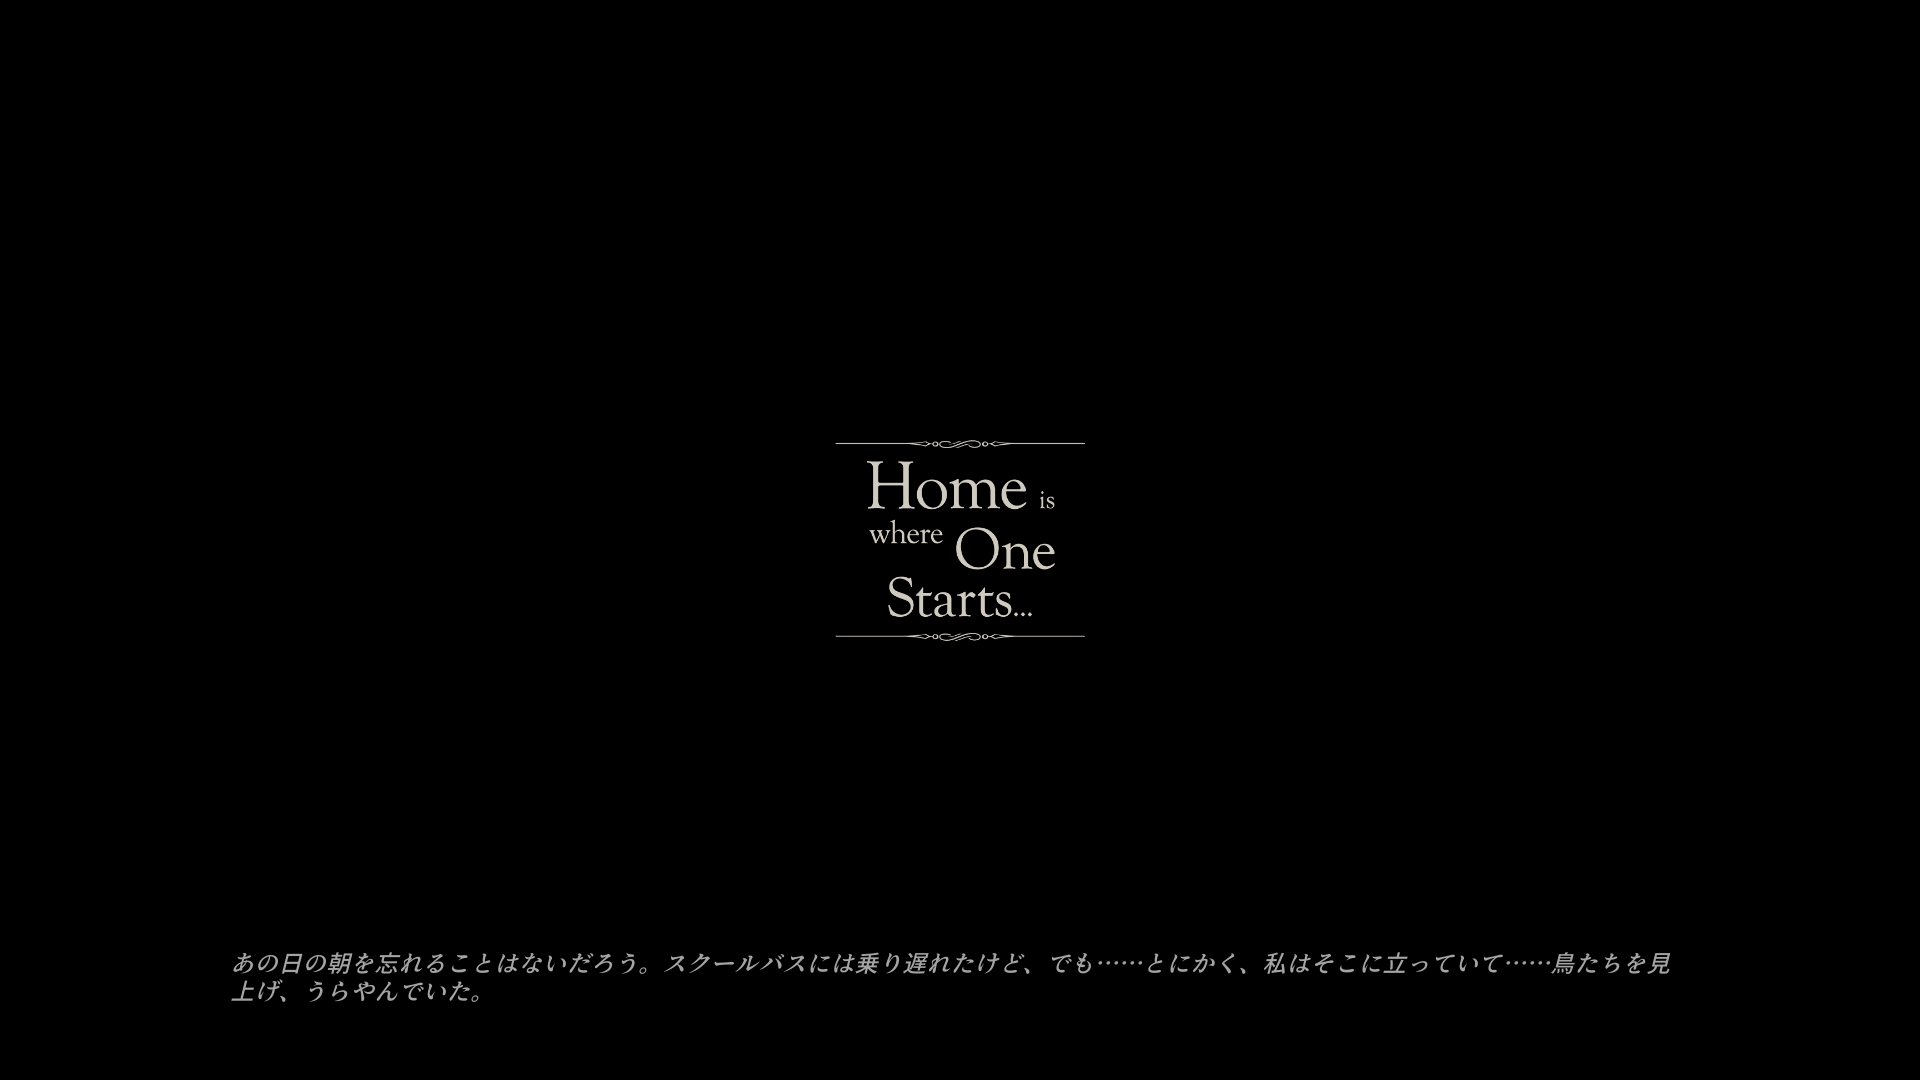 PC ゲーム Home is Where One Starts... 日本語化メモ、PC ゲーム Home is Where One Starts... フォント変更方法、Home is Where One Starts... - Arial.font_raw フォントファイル書き換え(unity default resources - Arial.font_raw)、Arial.font_raw フォントを源暎アンチック v5(GenEiAntiqueNv5-M.ttf)に書き換えたスクリーンショット